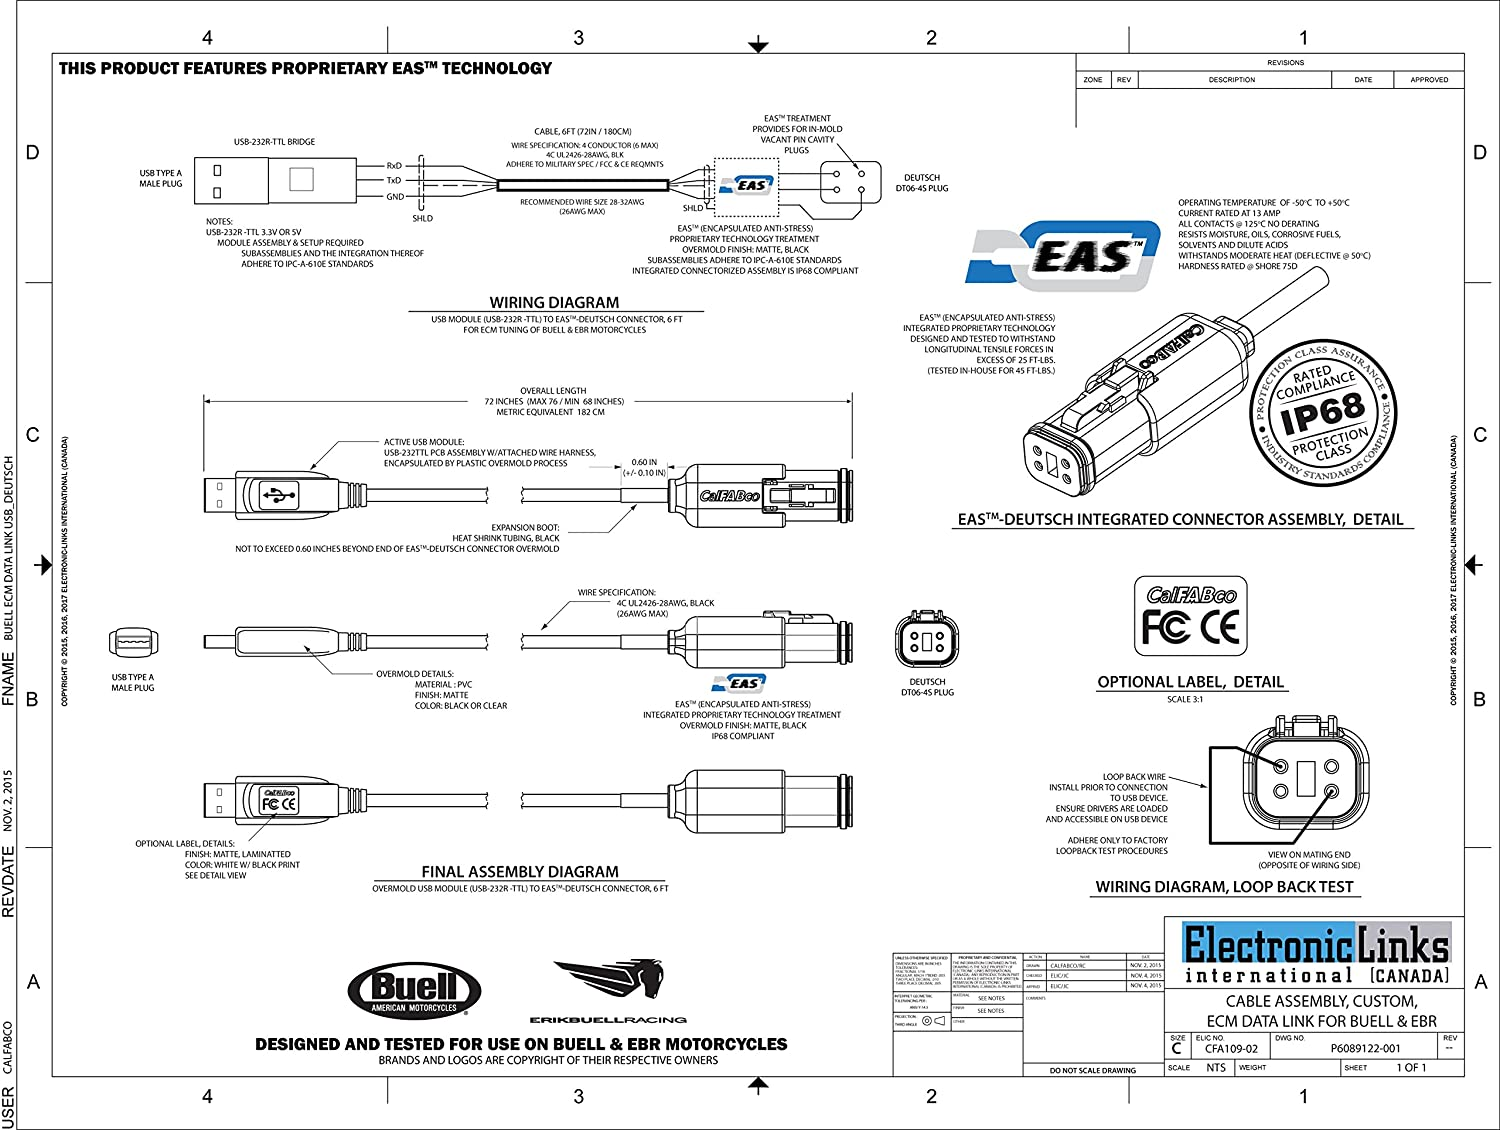 buell wiring diagram wiring diagram perf ce buell wiring diagram wiring diagram buell 1125r wiring diagram buell wiring diagram